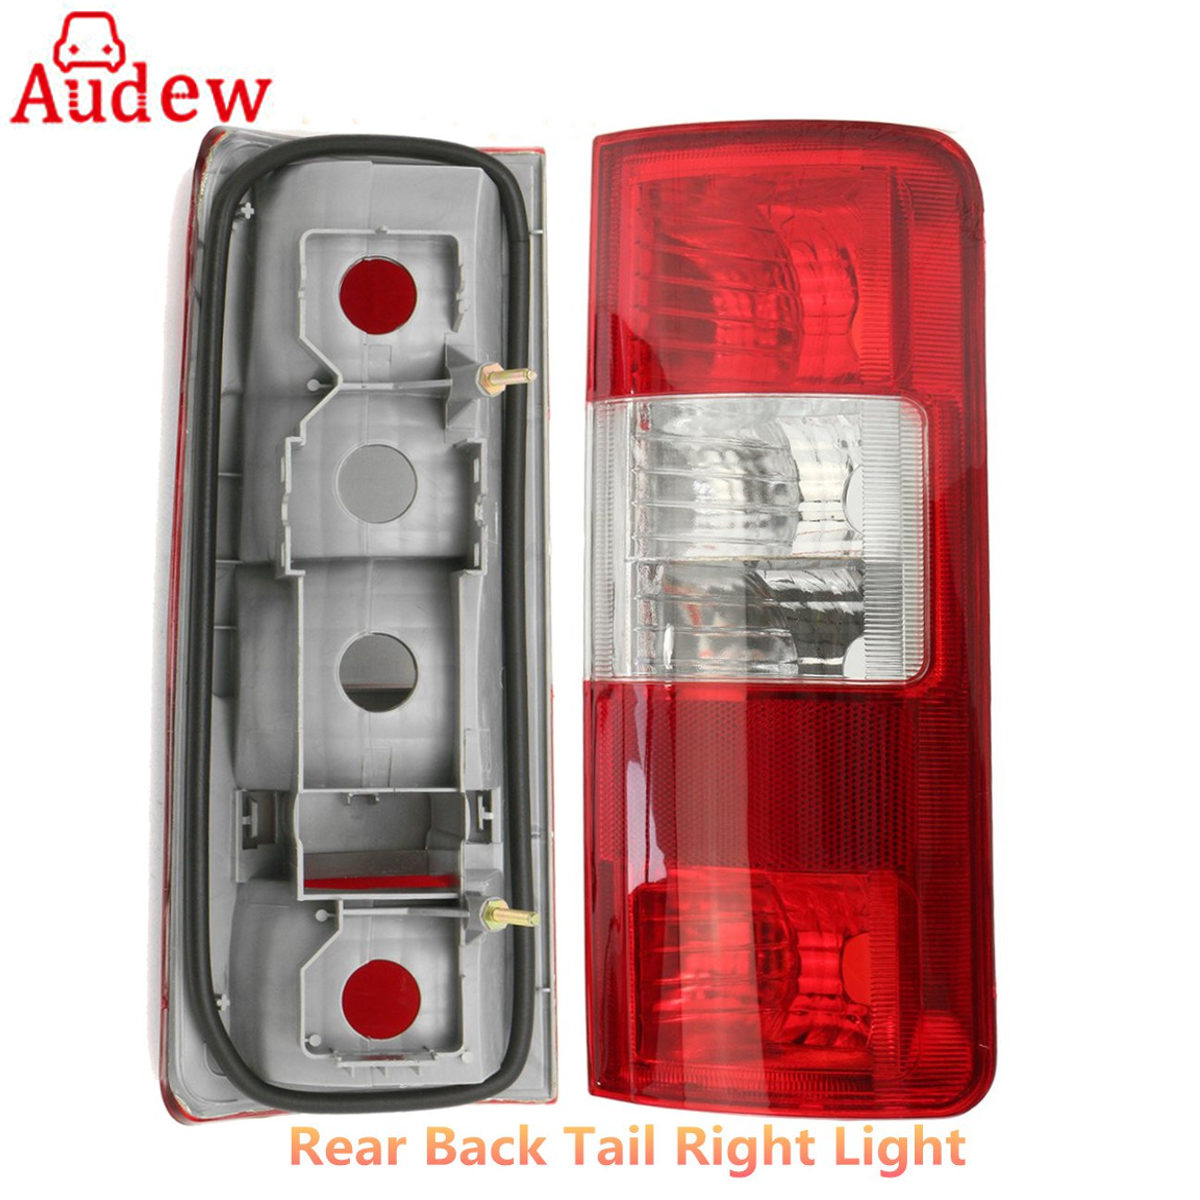 1Pcs Car Rear Backup Tail Lamp Light Lens Driver Left/Right Side For Ford Transit Connect 2002-2009 1 pc outer rear tail light lamp taillamp taillight rh right side gr1a 51 170 for mazda 6 2005 2010 gg